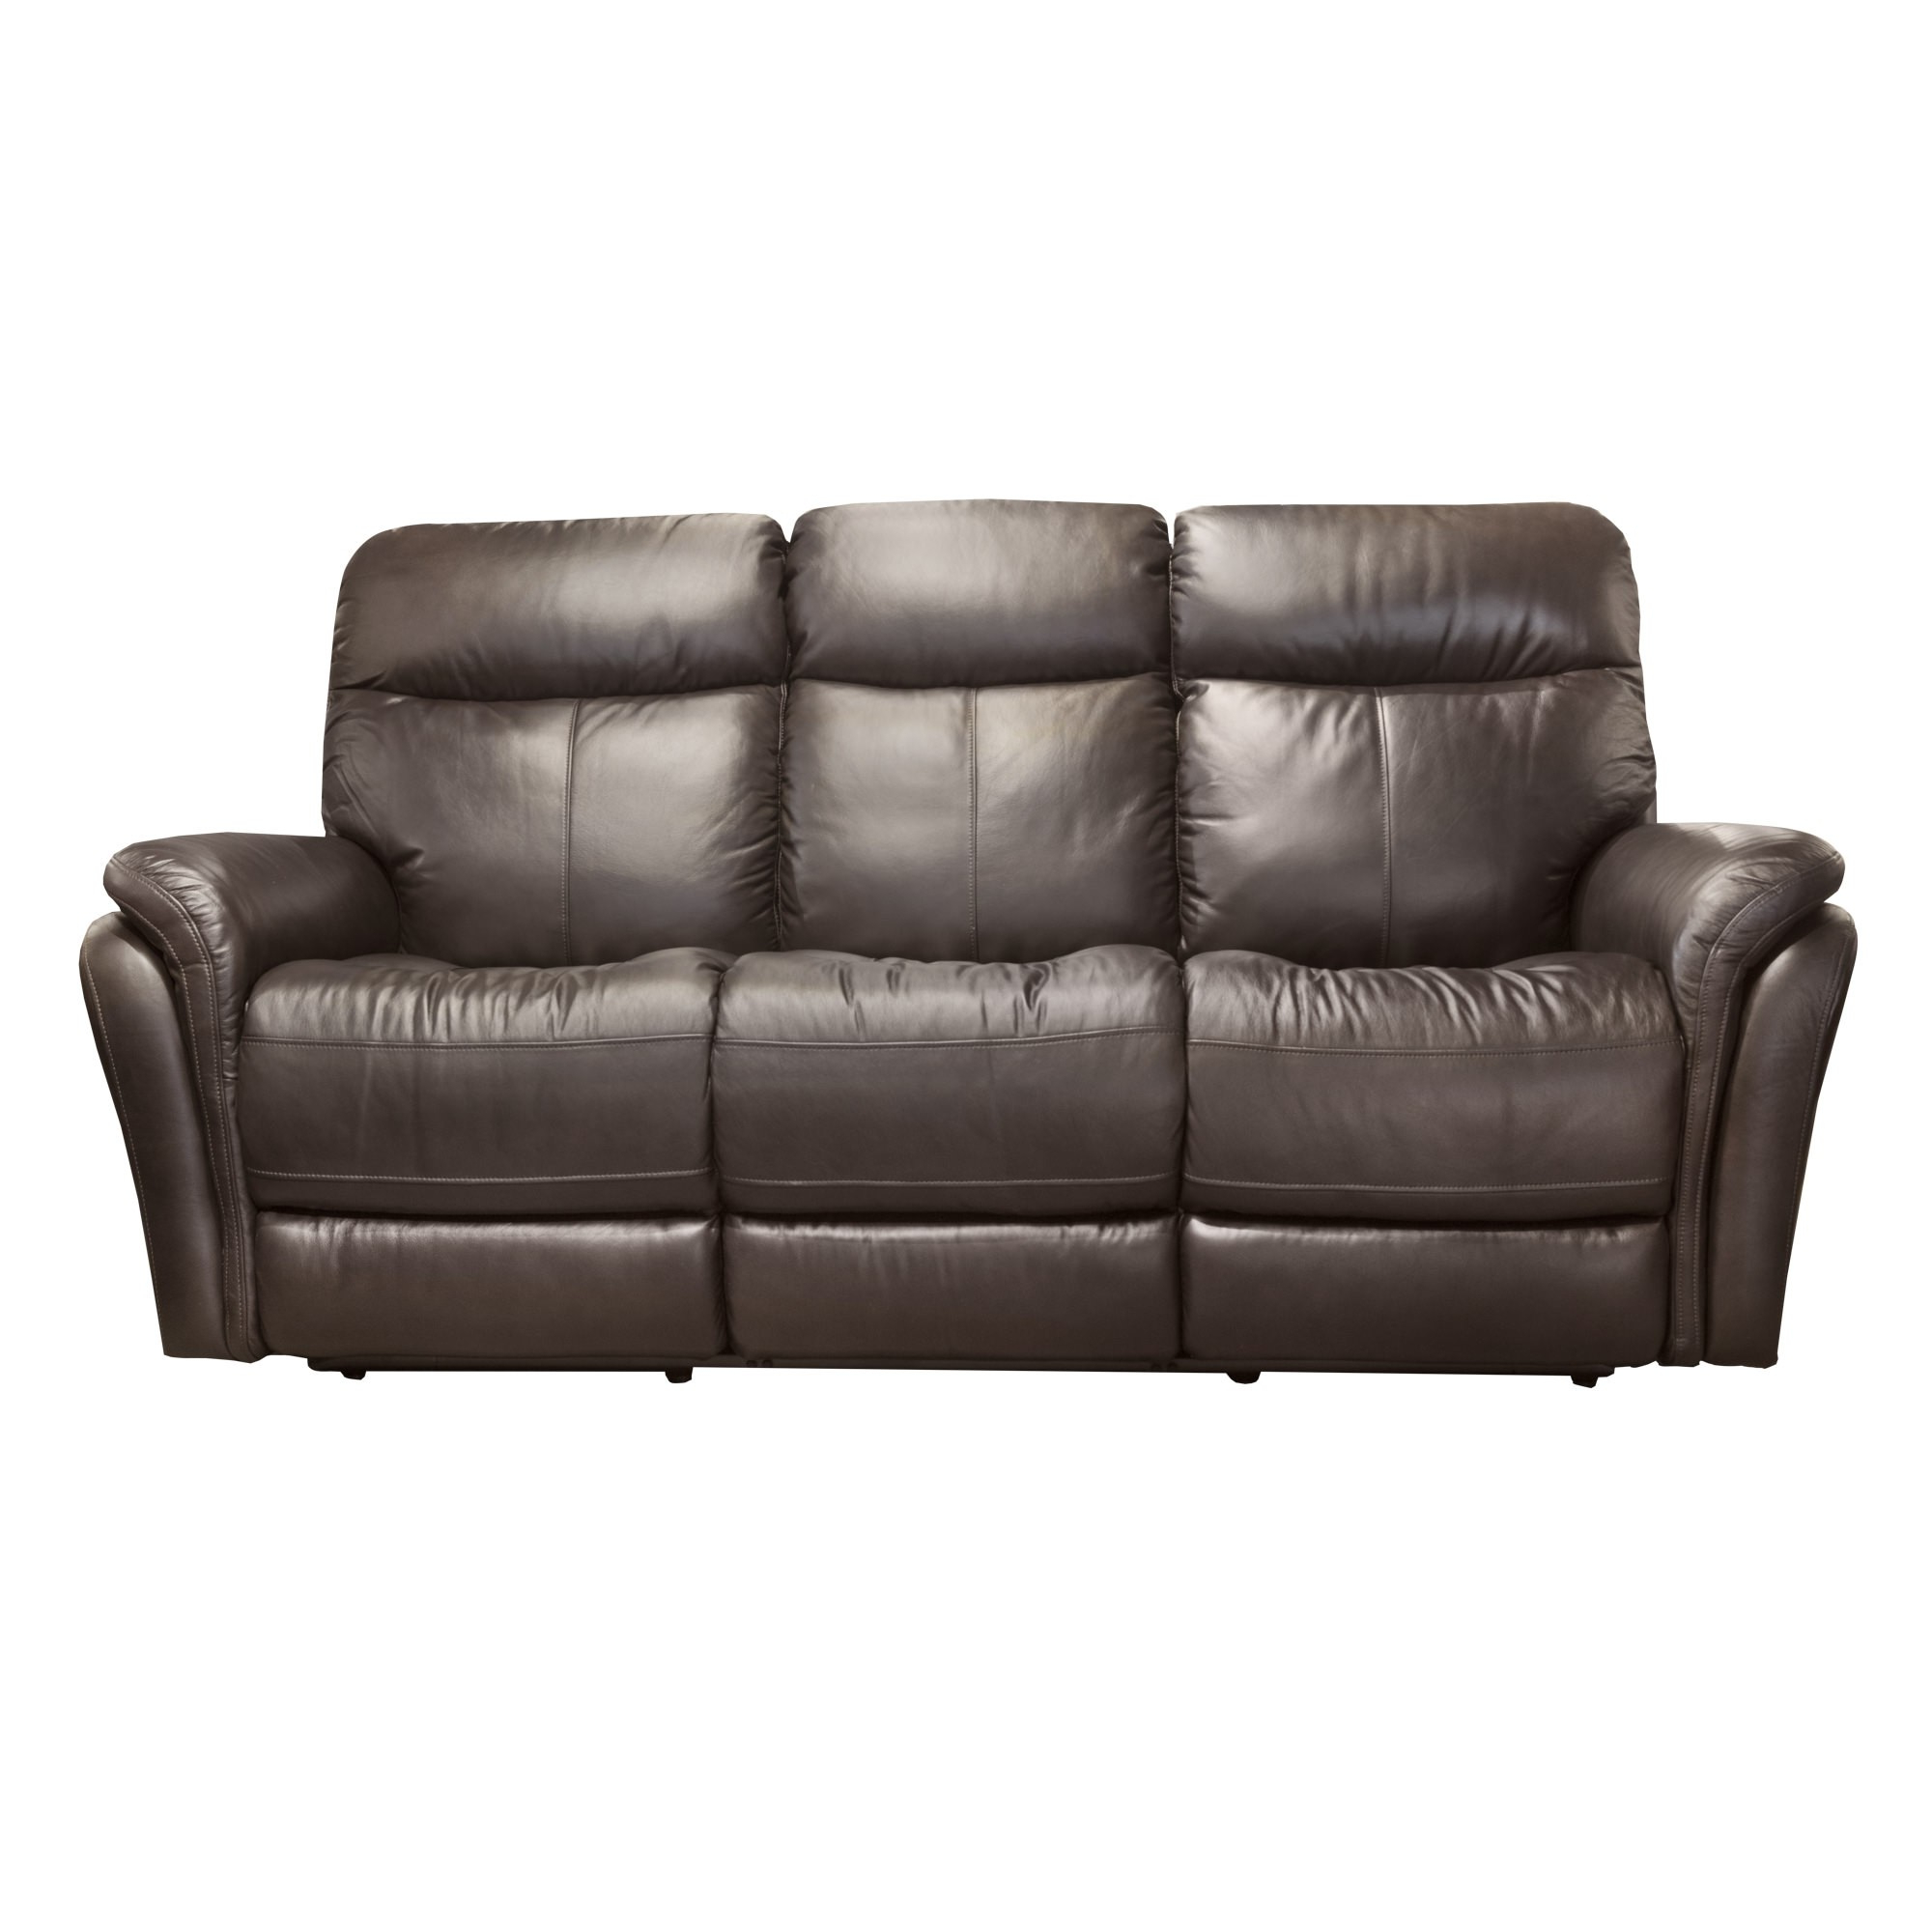 Zoey Brown Power Reclining Sofa With Power Headrest With Regard To Newest Expedition Brown Power Reclining Sofas (View 1 of 20)